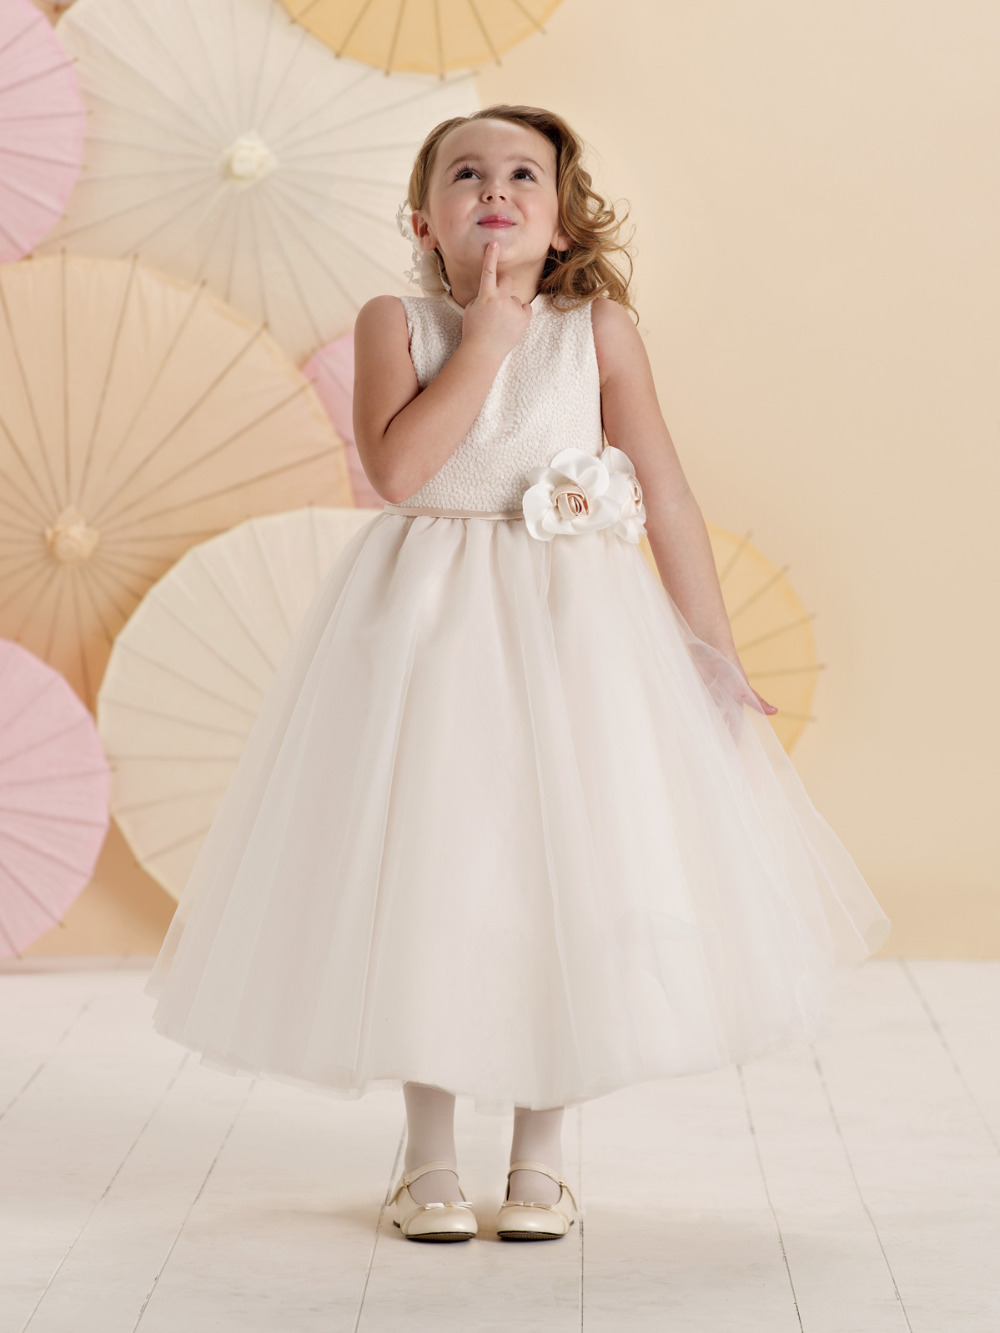 Beautiful white baby girls gowns with sash girl birthday ivory beautiful white baby girls gowns with sash girl birthday ivory lovely flower girl dresses cheap f11202 in flower girl dresses from weddings events on izmirmasajfo